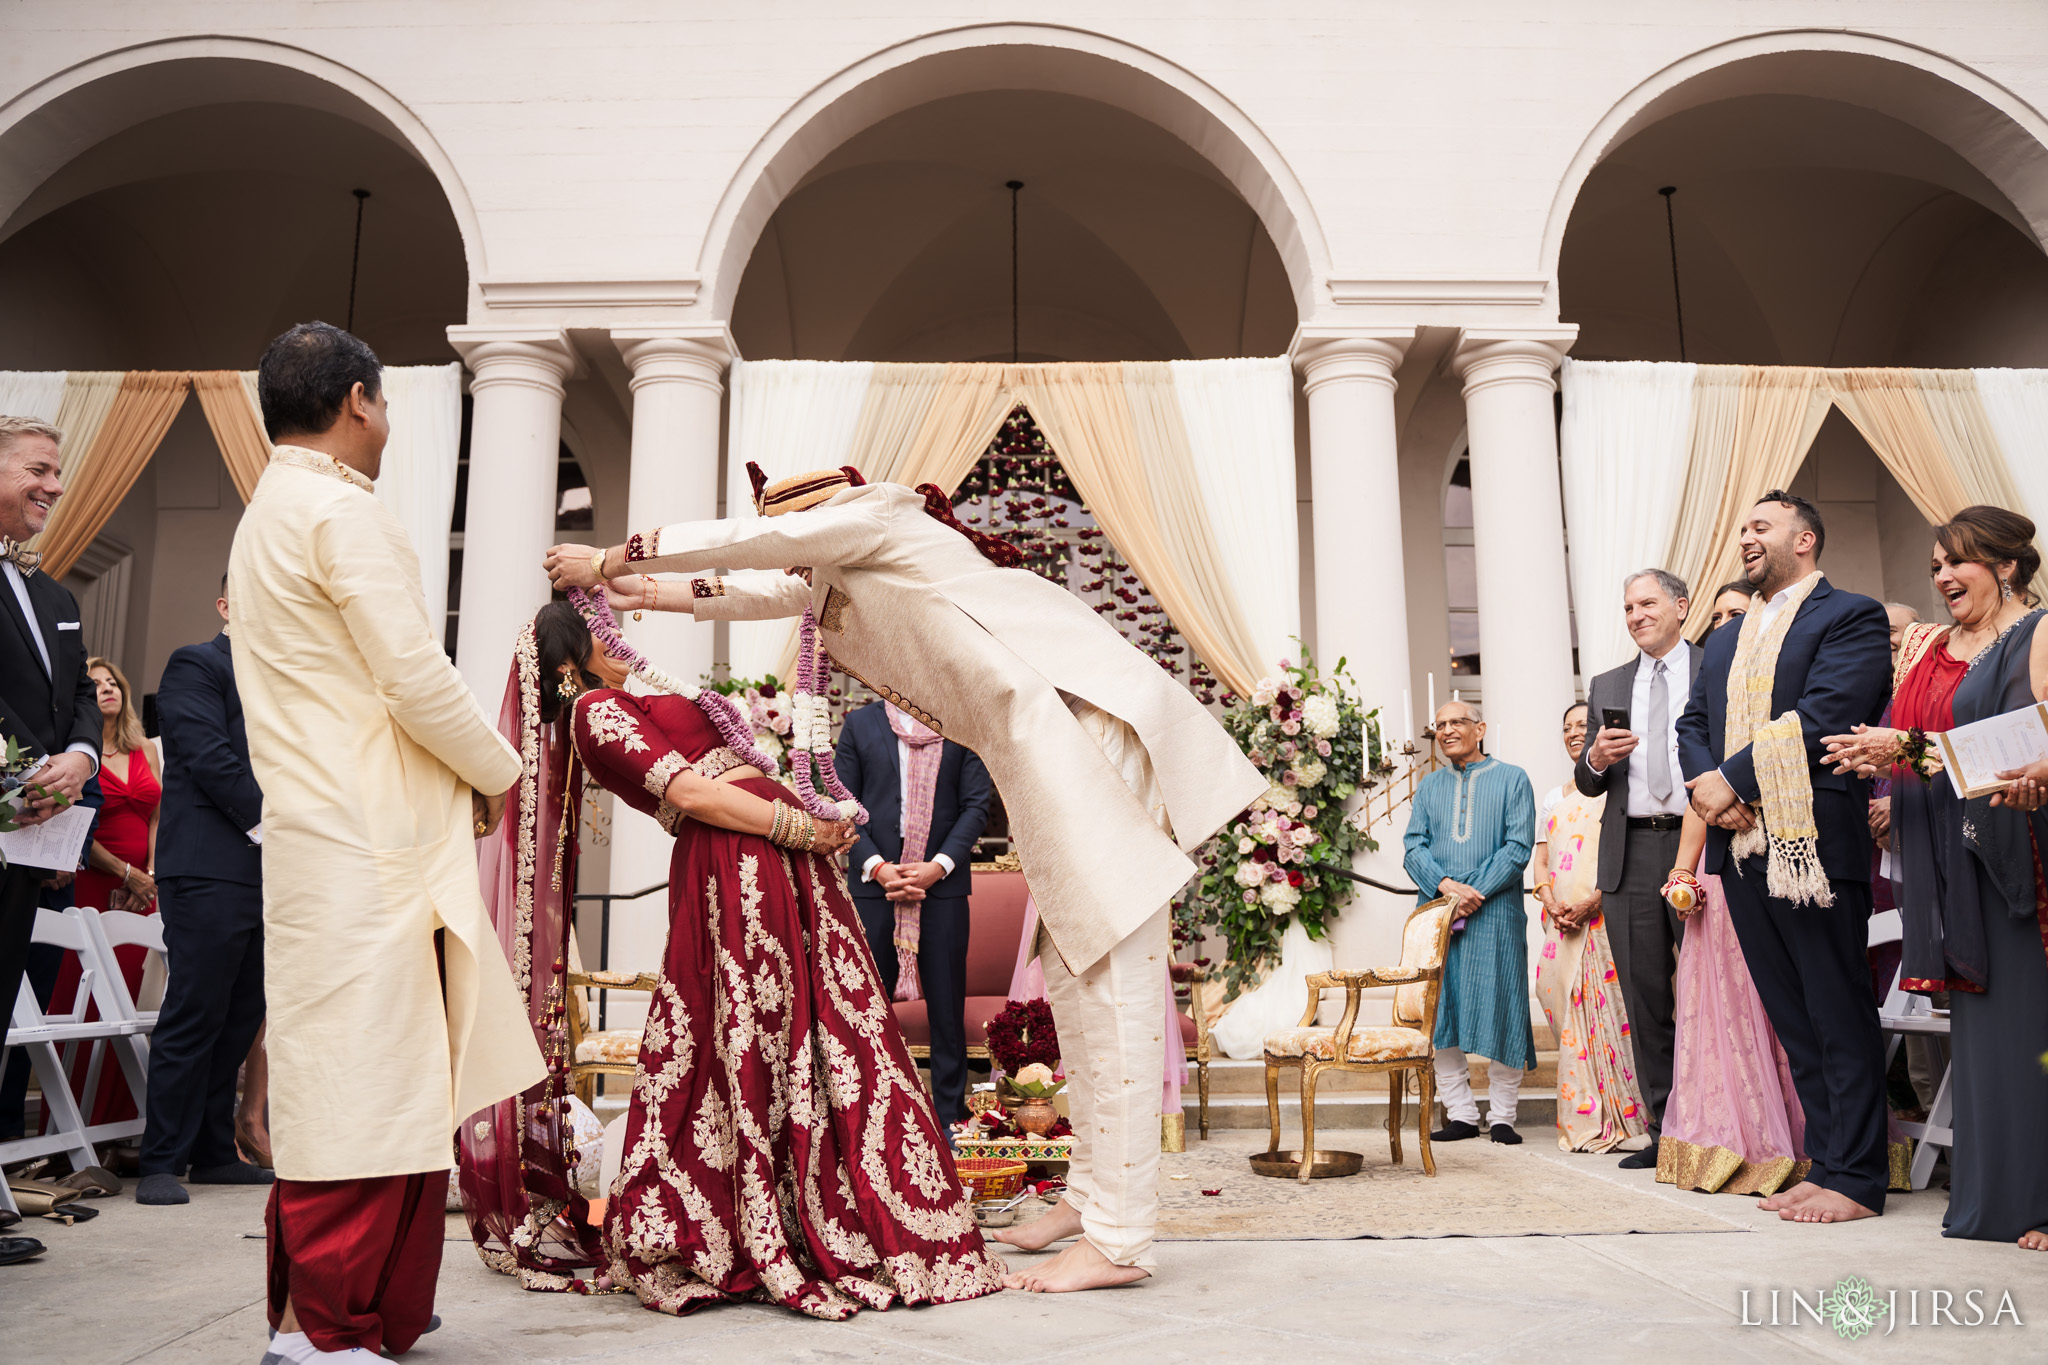 22-The-Ebell-Los-Angeles-Indian-Wedding-Ceremony-Photography.jpg